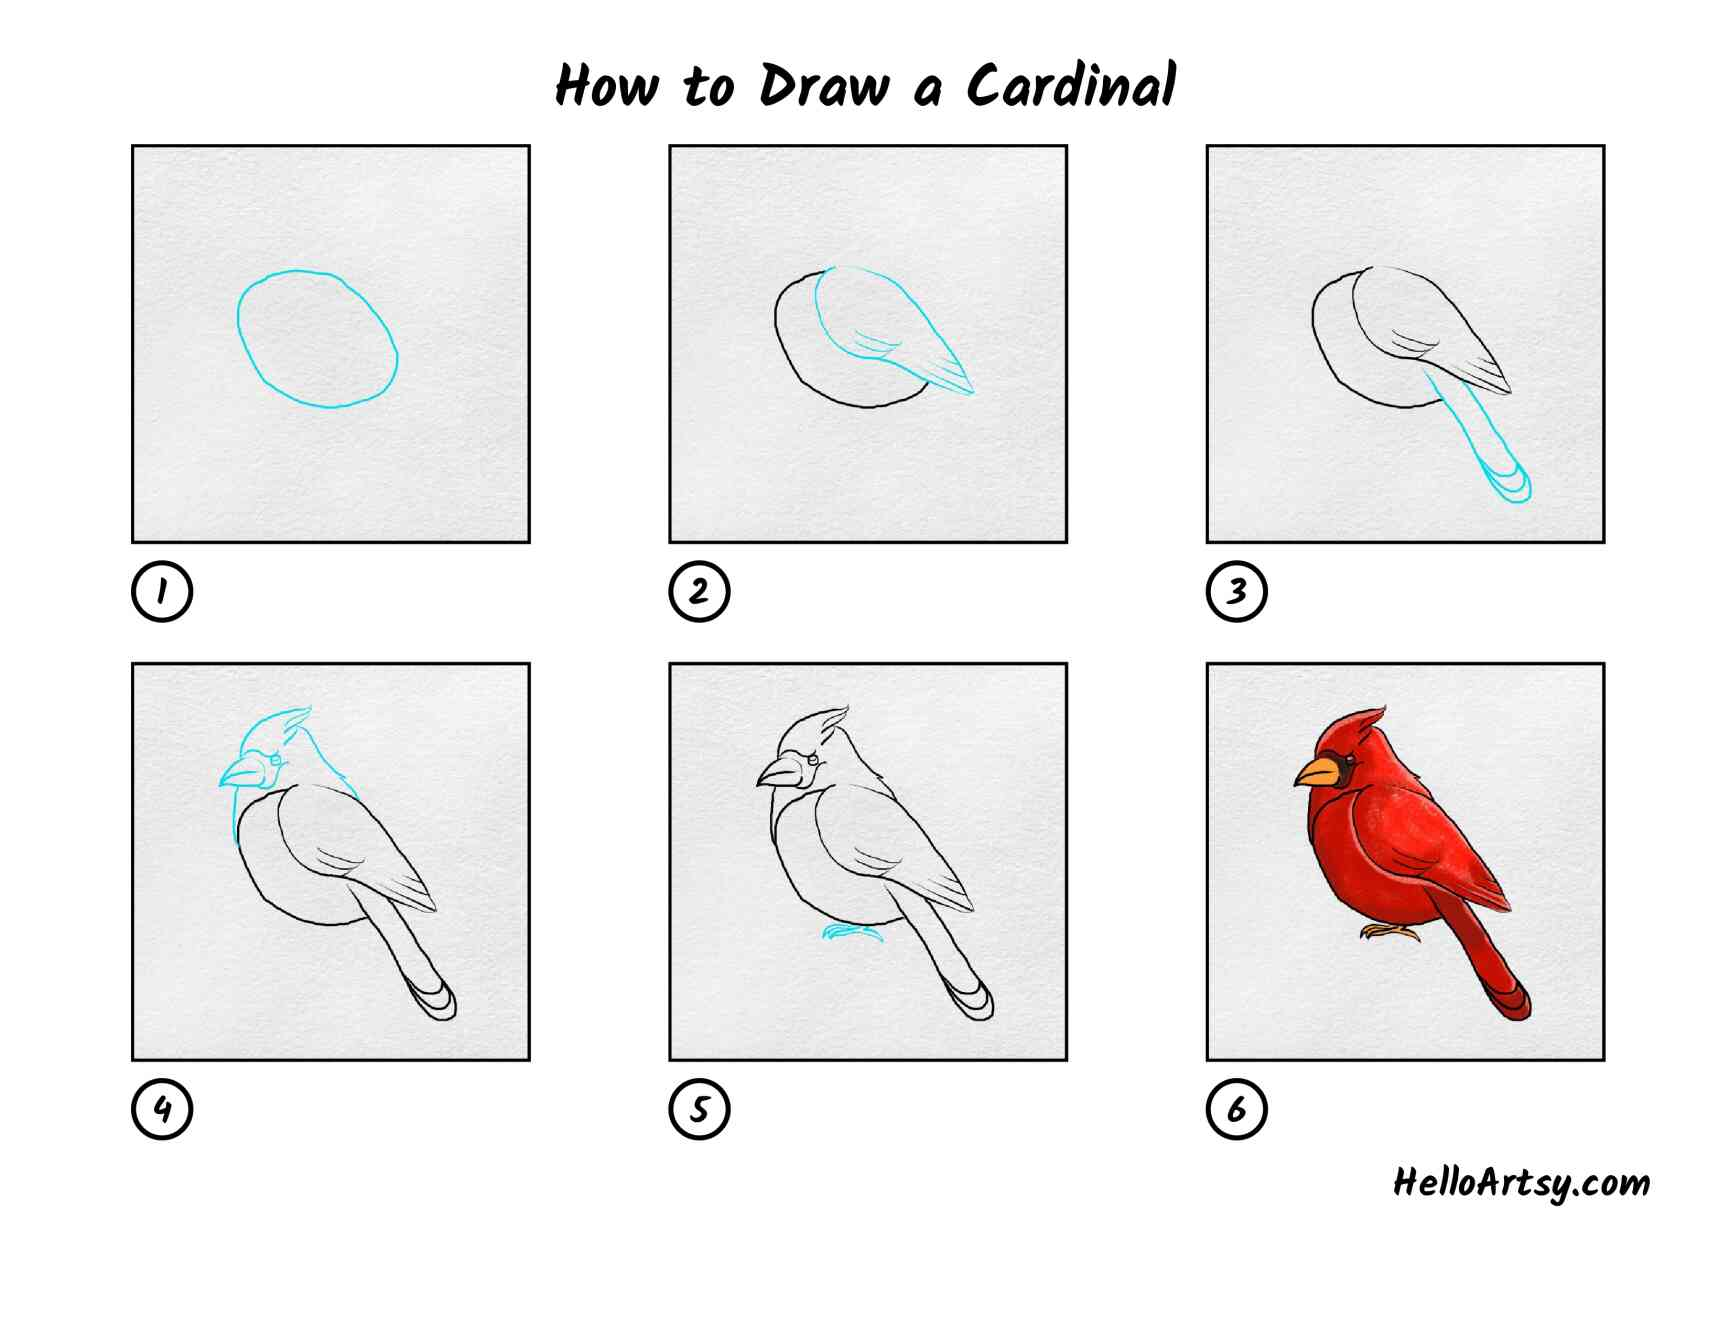 How To Draw A Cardinal: All Steps